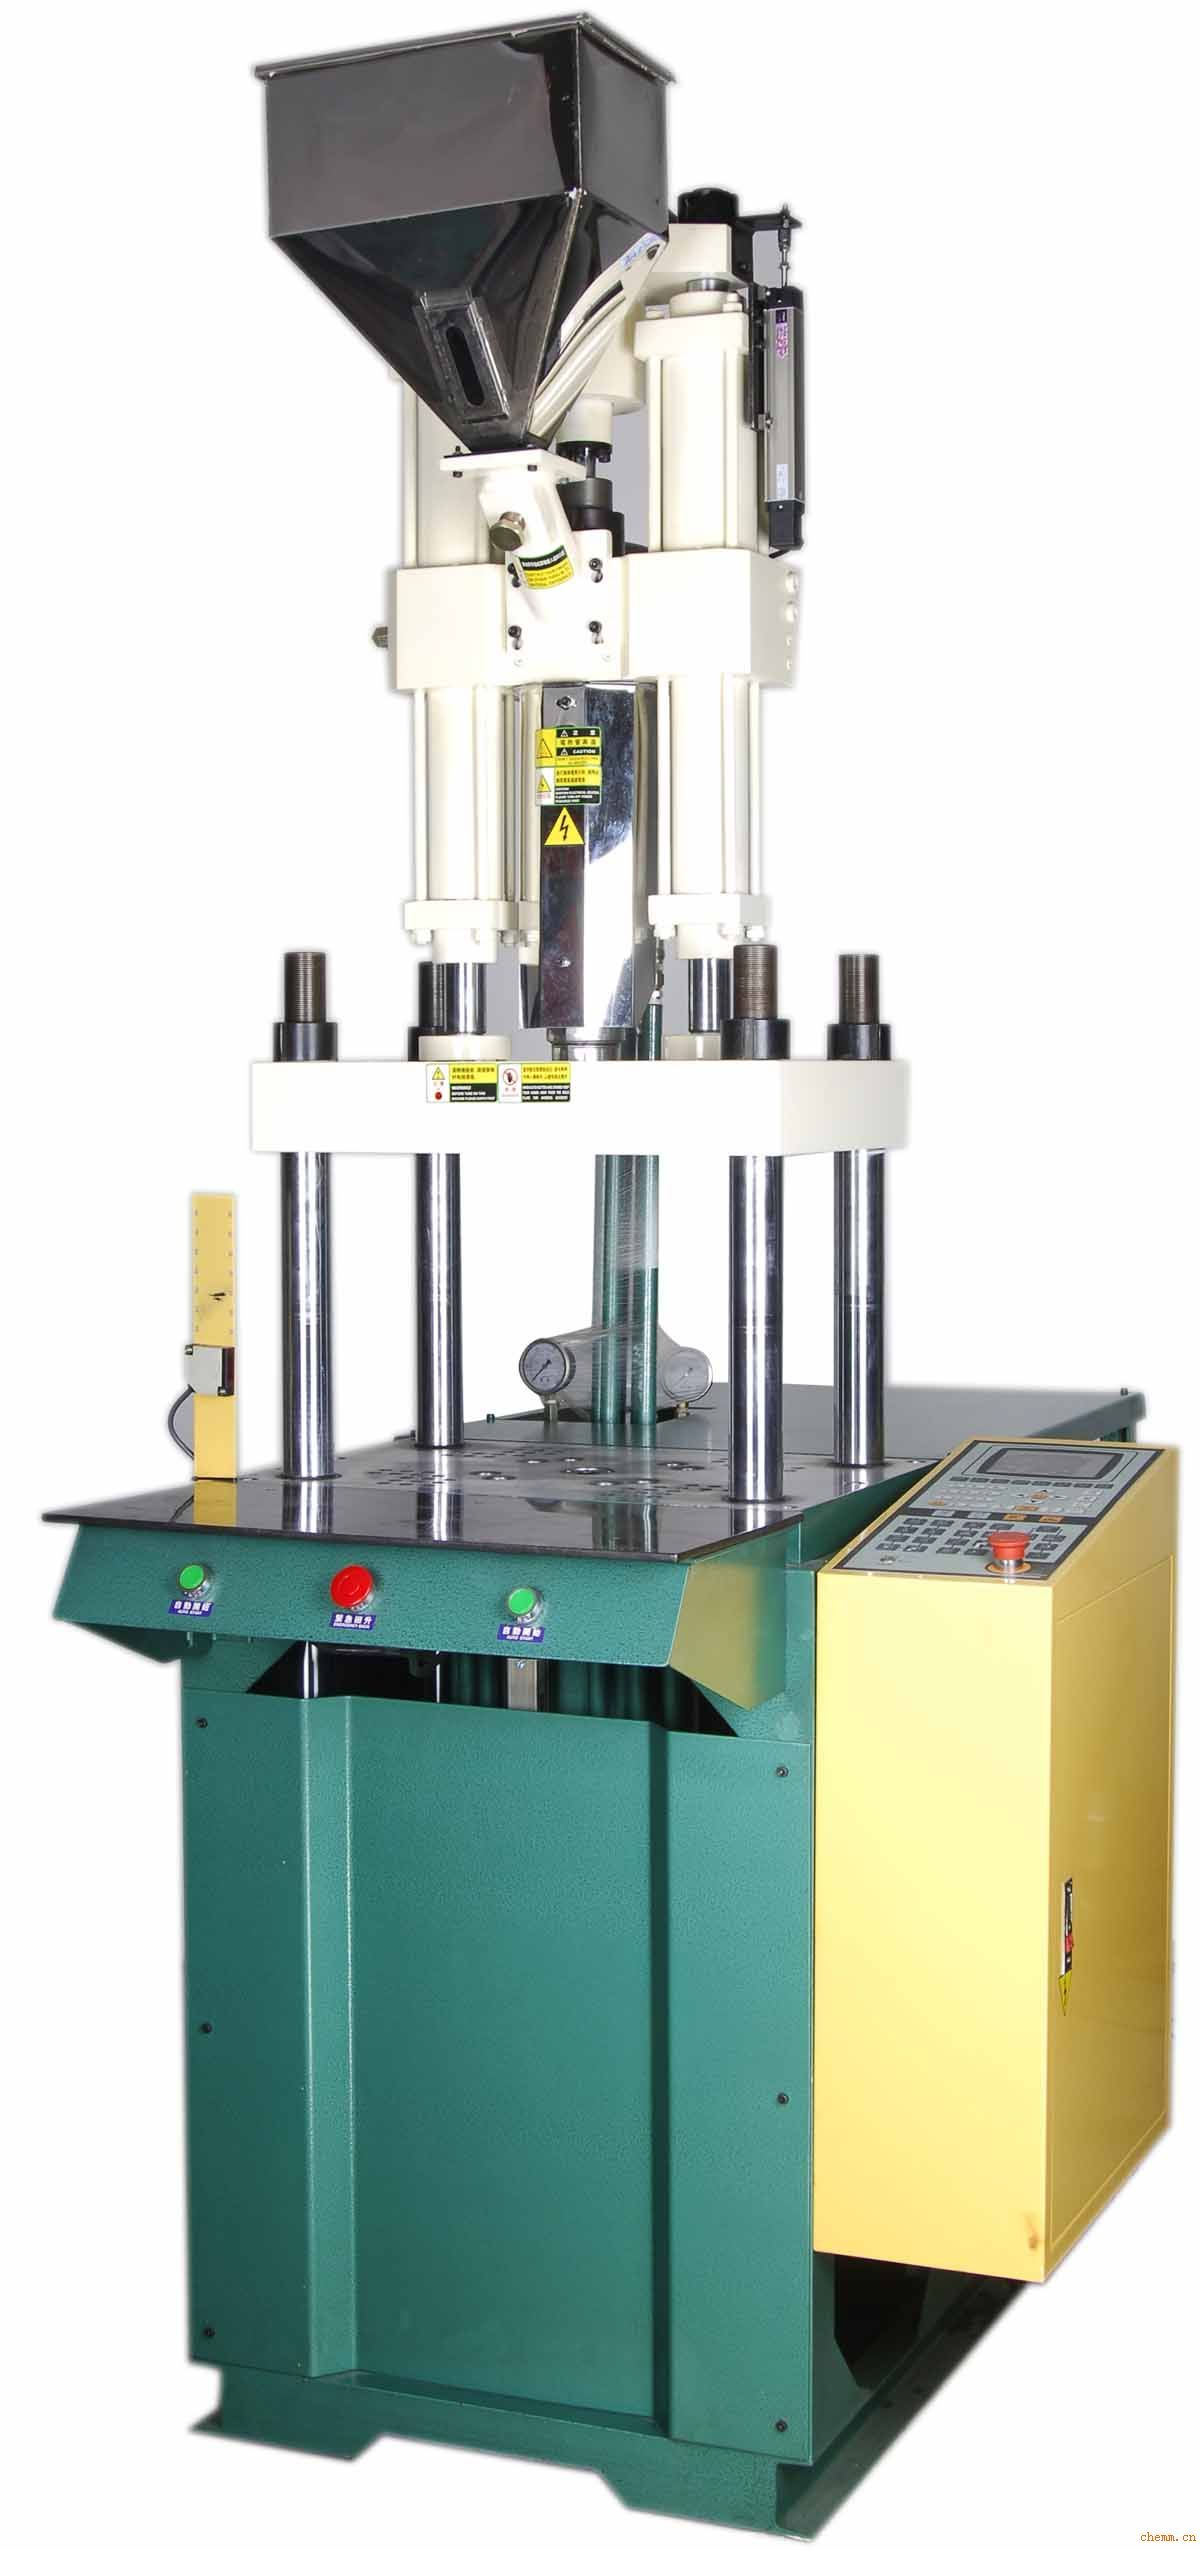 Injection Molding Machines – Types, Costs, How To Choose The Best Machine For Plastic Injection Mold Manufacturing